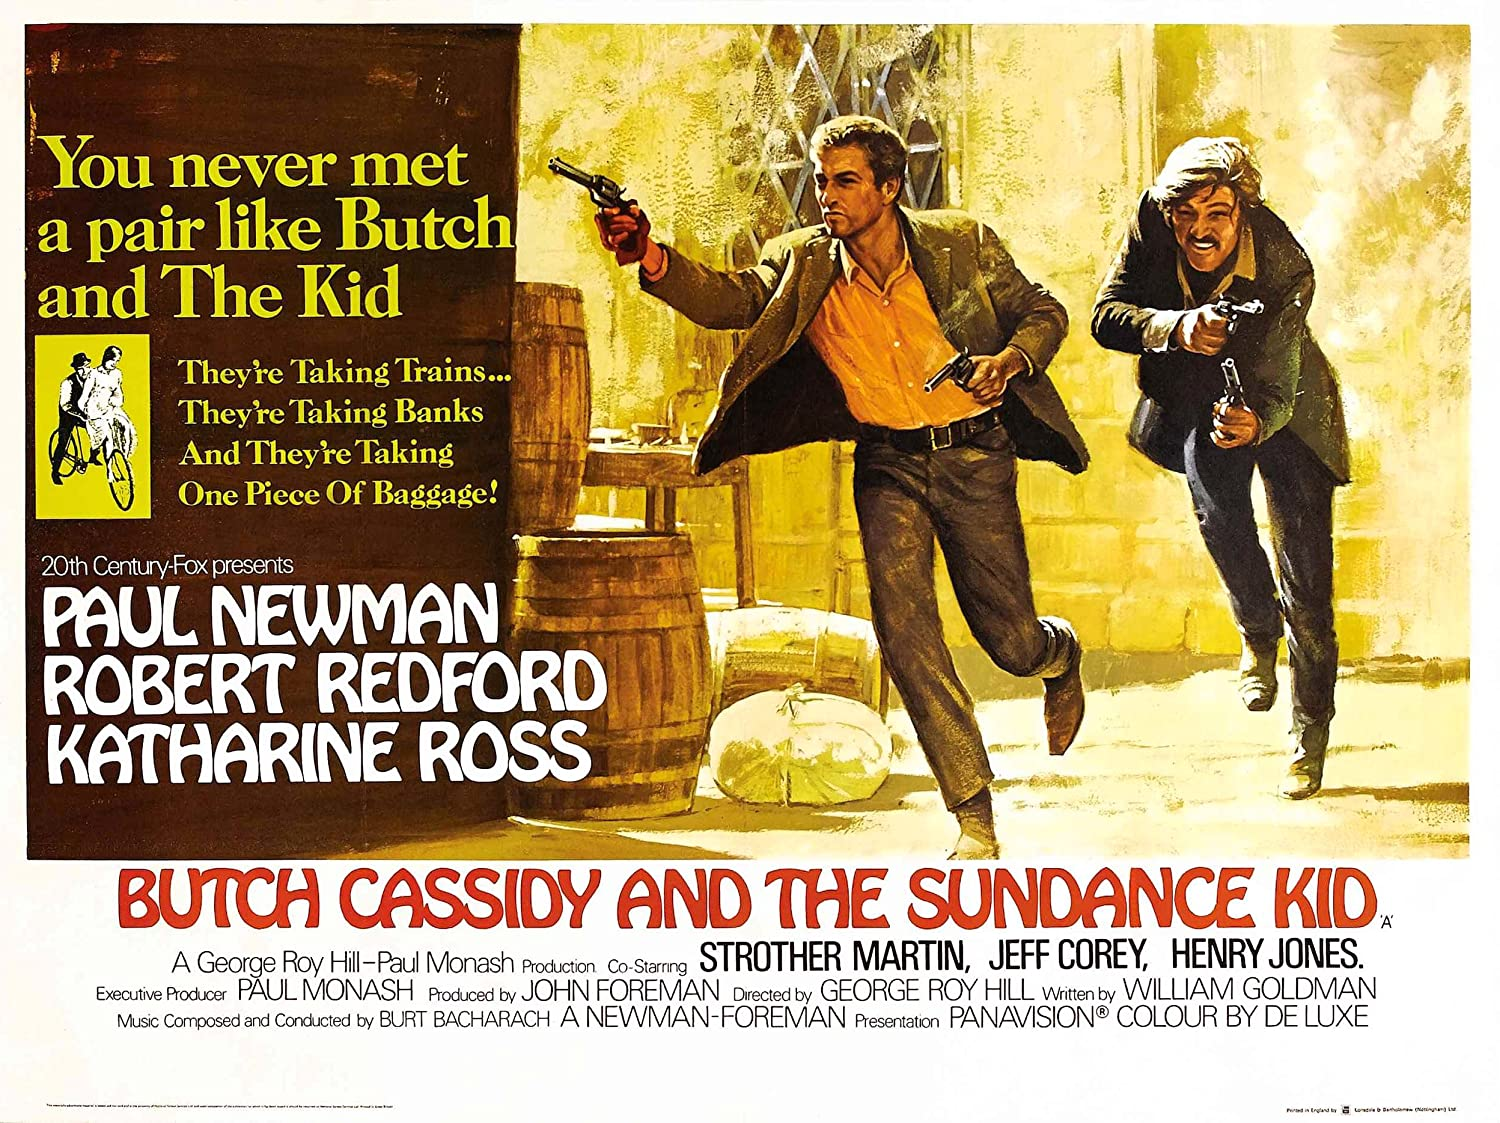 VINTAGE MOVIE / FILM POSTER SUPERB QUALITY BUTCH CASSIDY AND THE ...